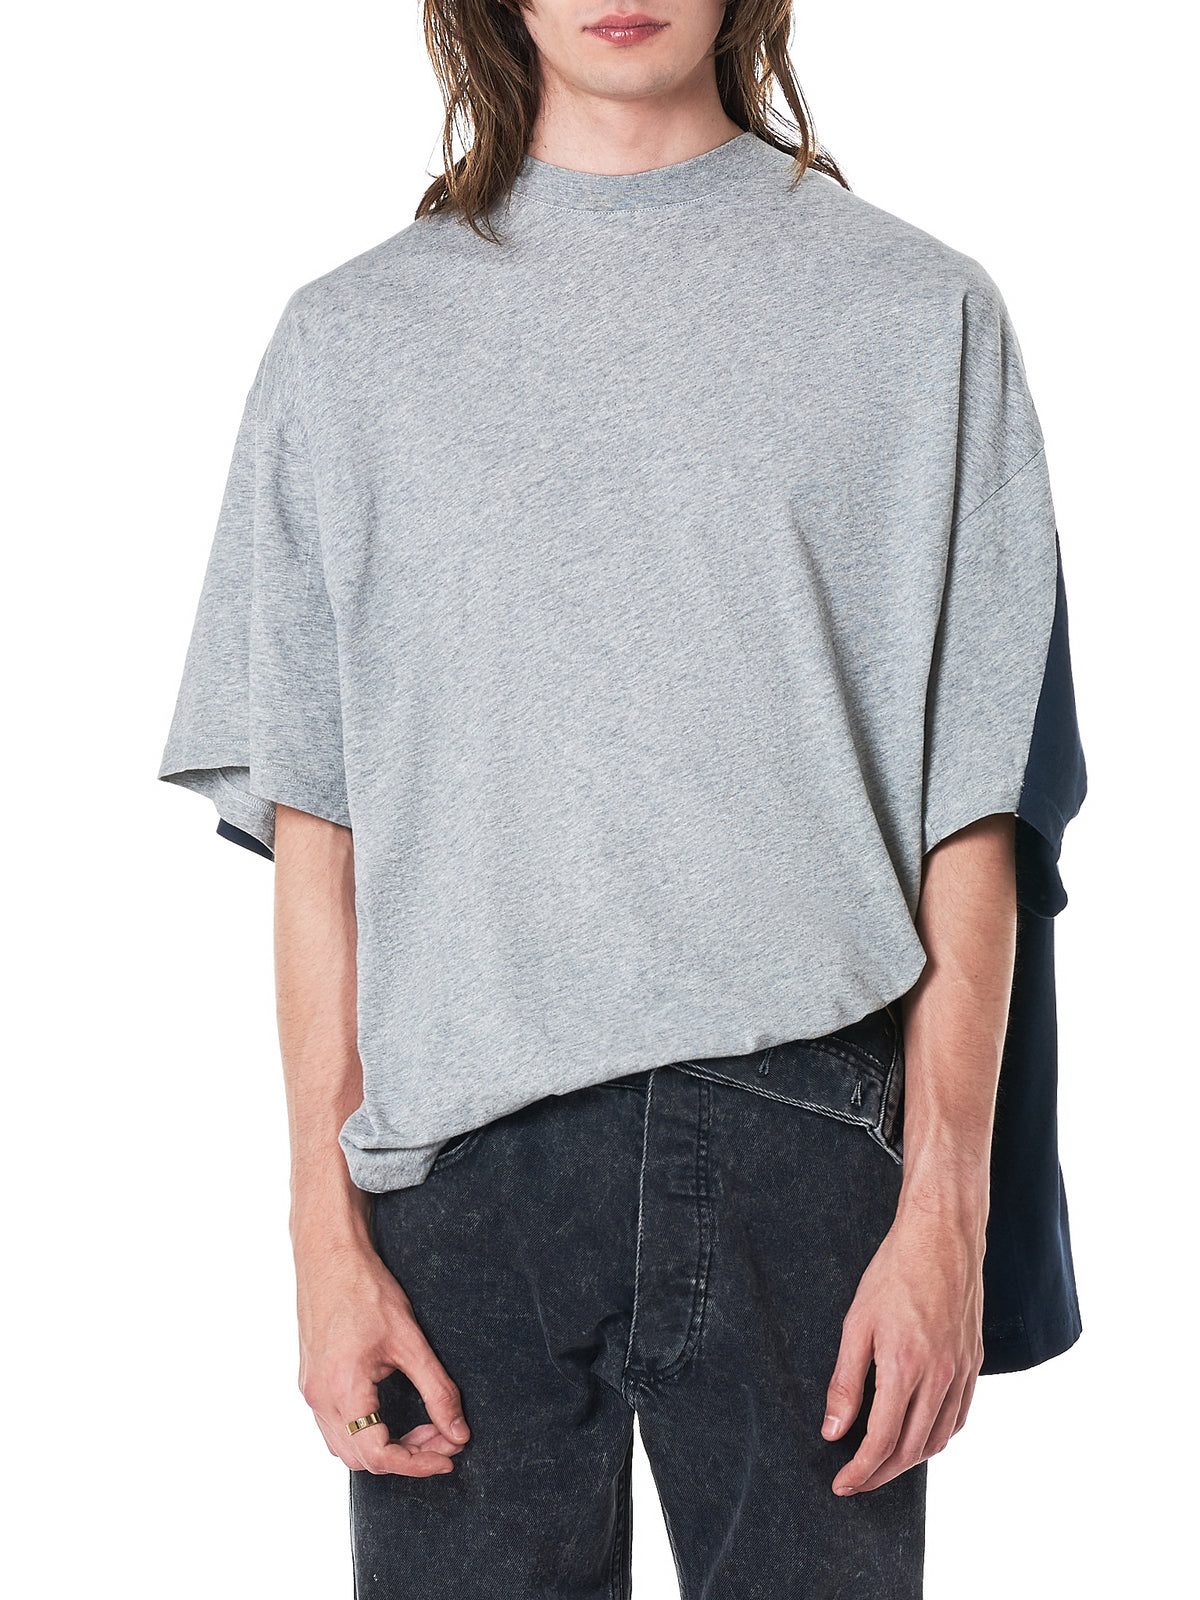 Y/Project Tee-Shirt - Hlorenzo Front